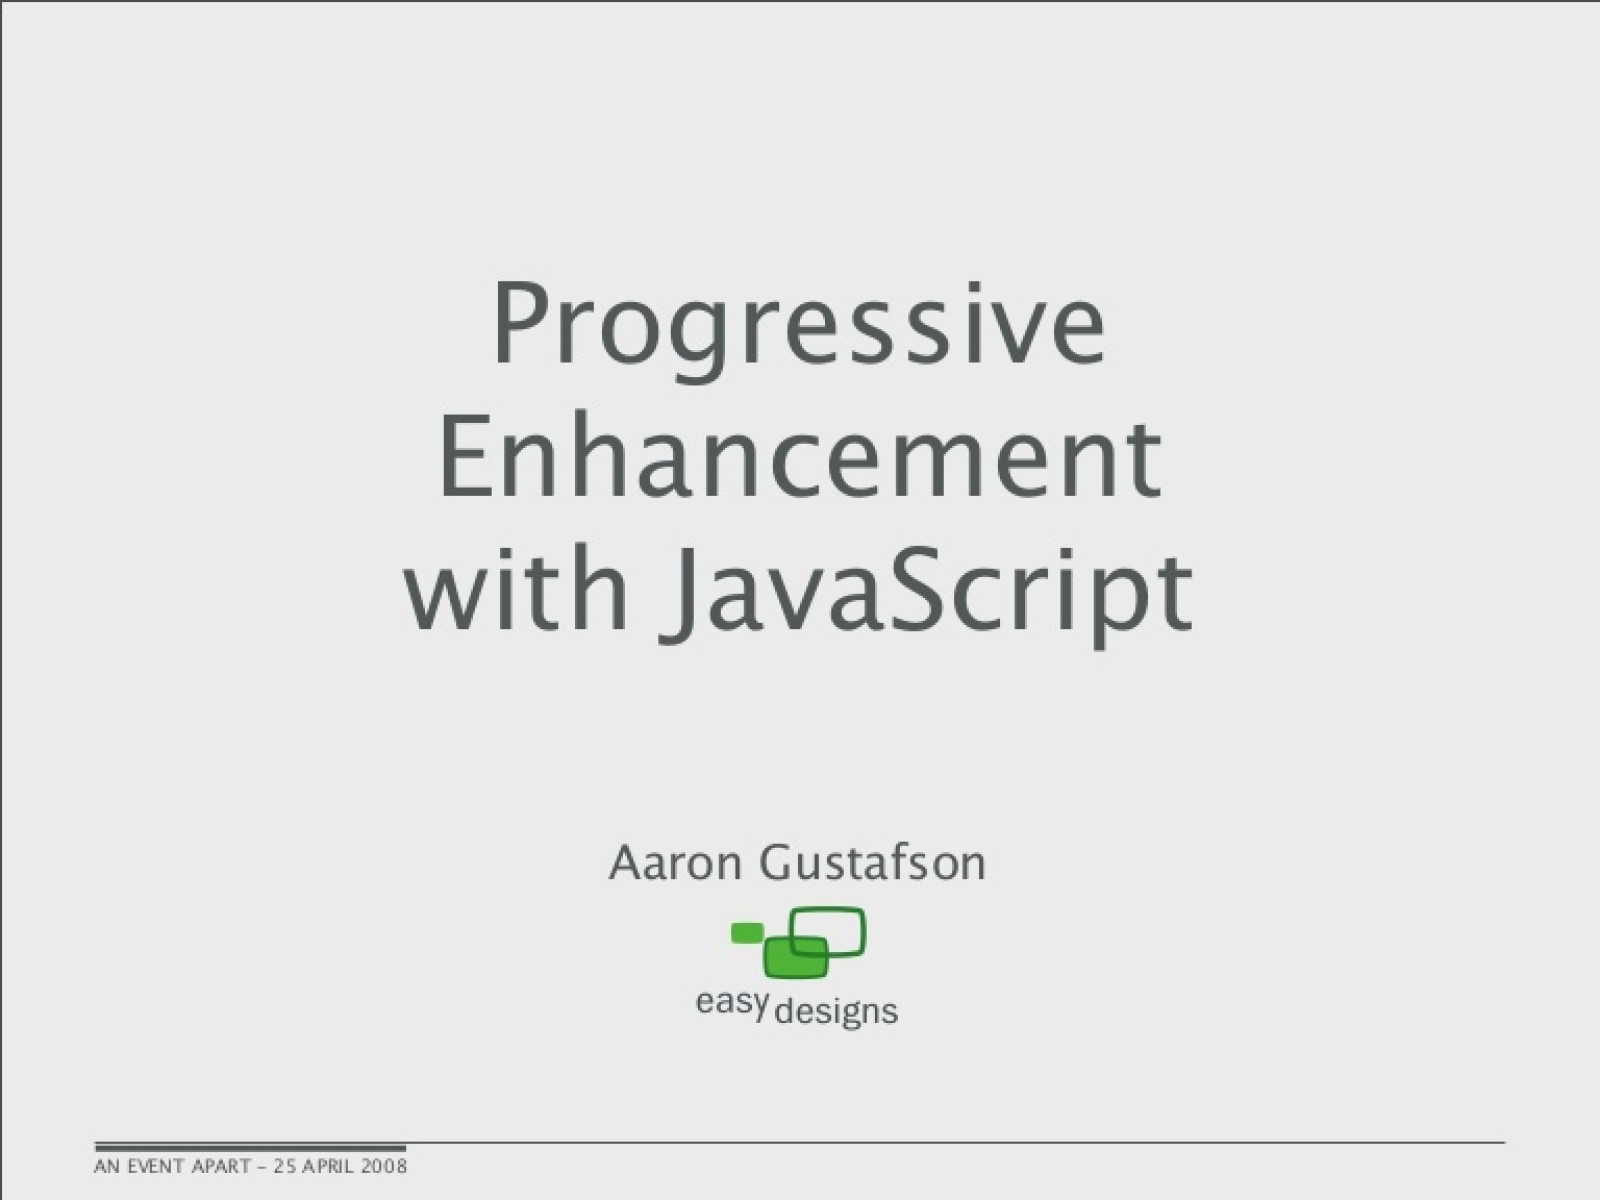 Progressive Enhancement with JavaScript